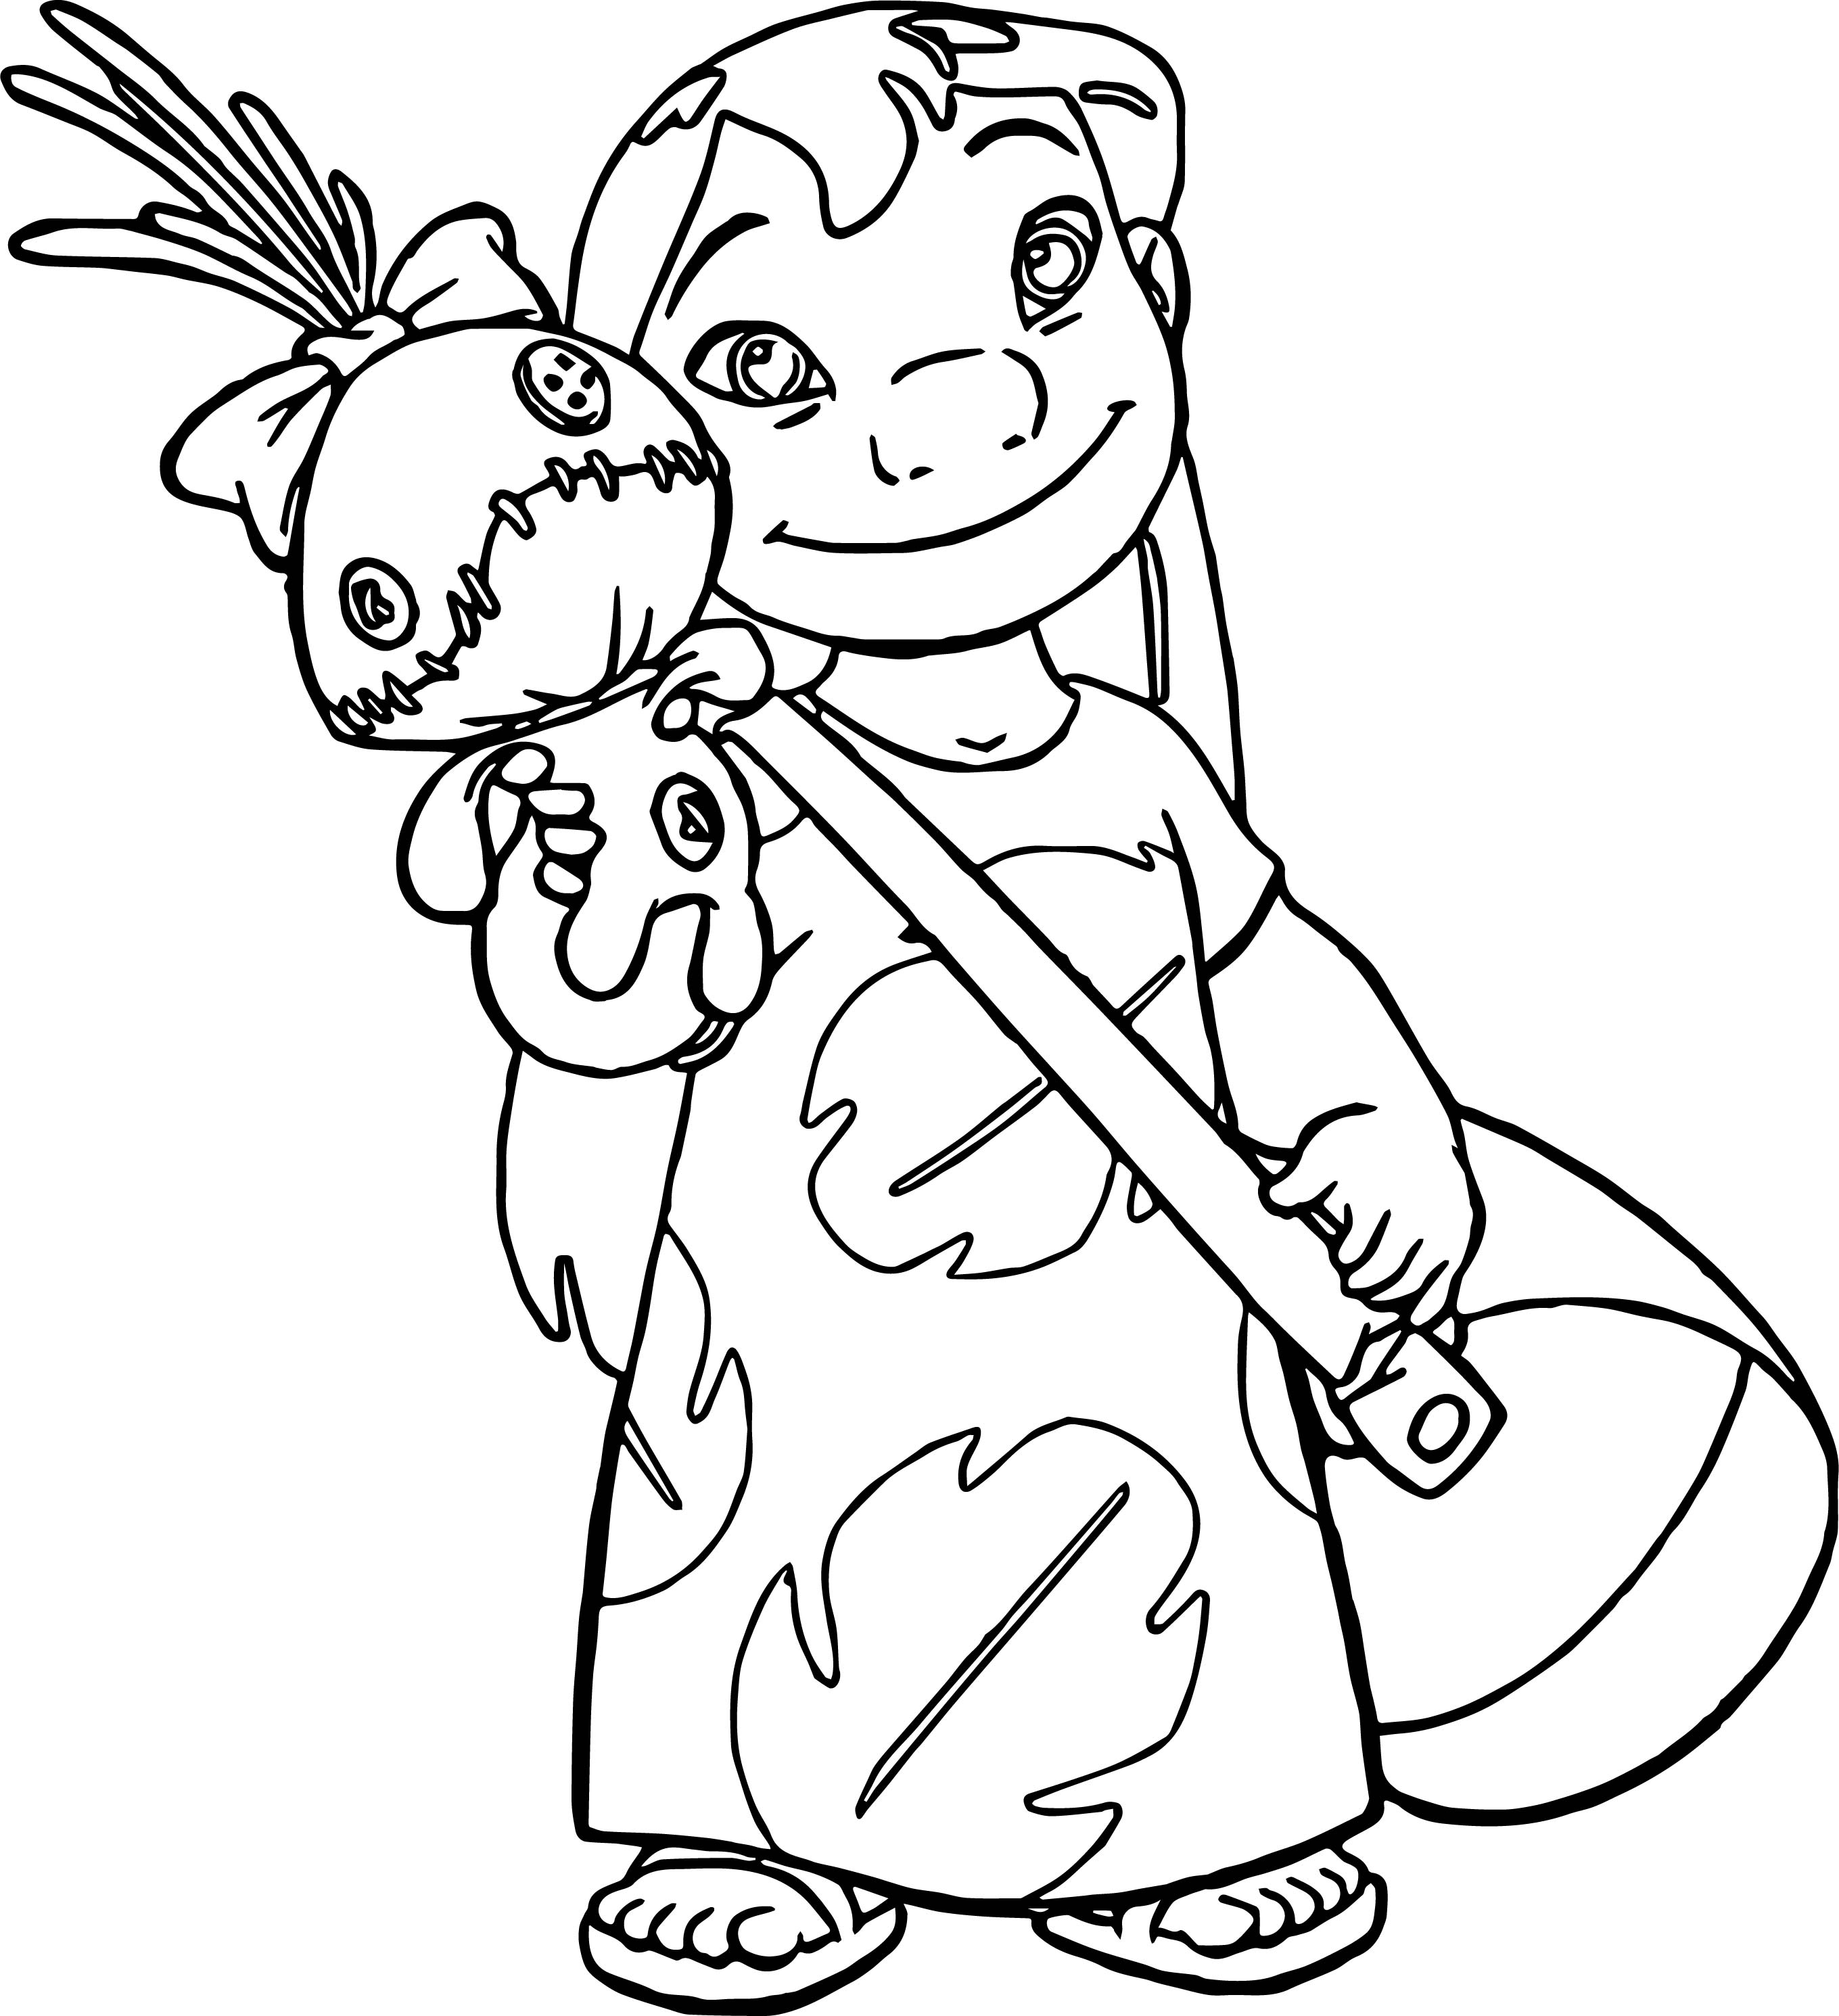 Lilo And Stitch Toy Coloring Page Wecoloringpage